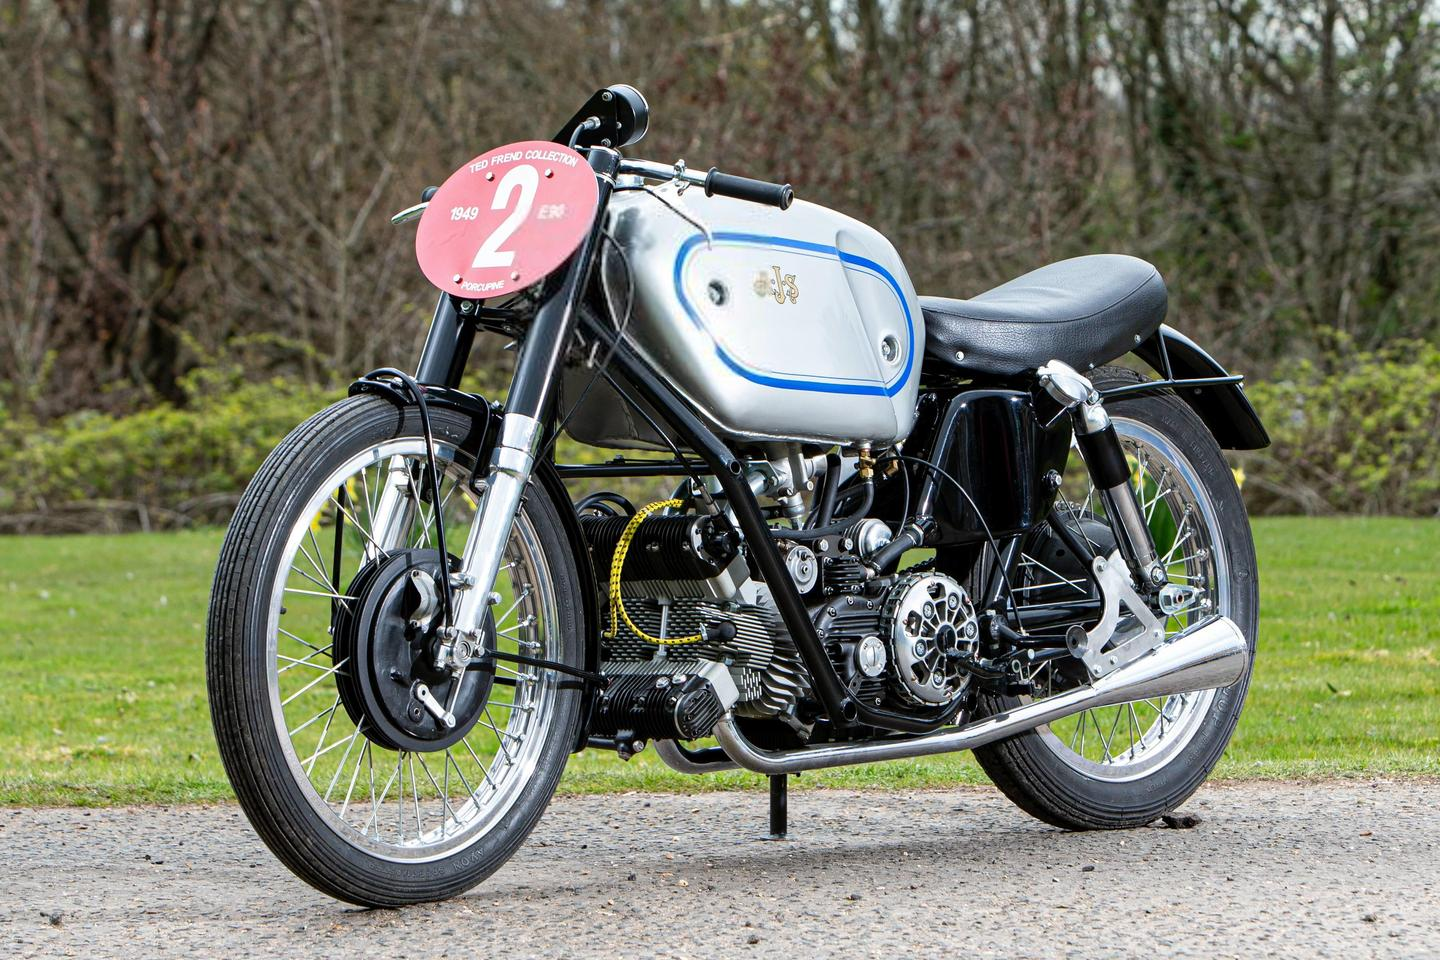 This 1946 AJS 500cc E90 'Porcupine' Grand Prix Racing Motorcycle is estimated to sell for between $355,000 to $426,000 (£250,000 to £300,000) at Bonhams' Three-day Summer Motorcycle Sale on 2-4 July, 2021